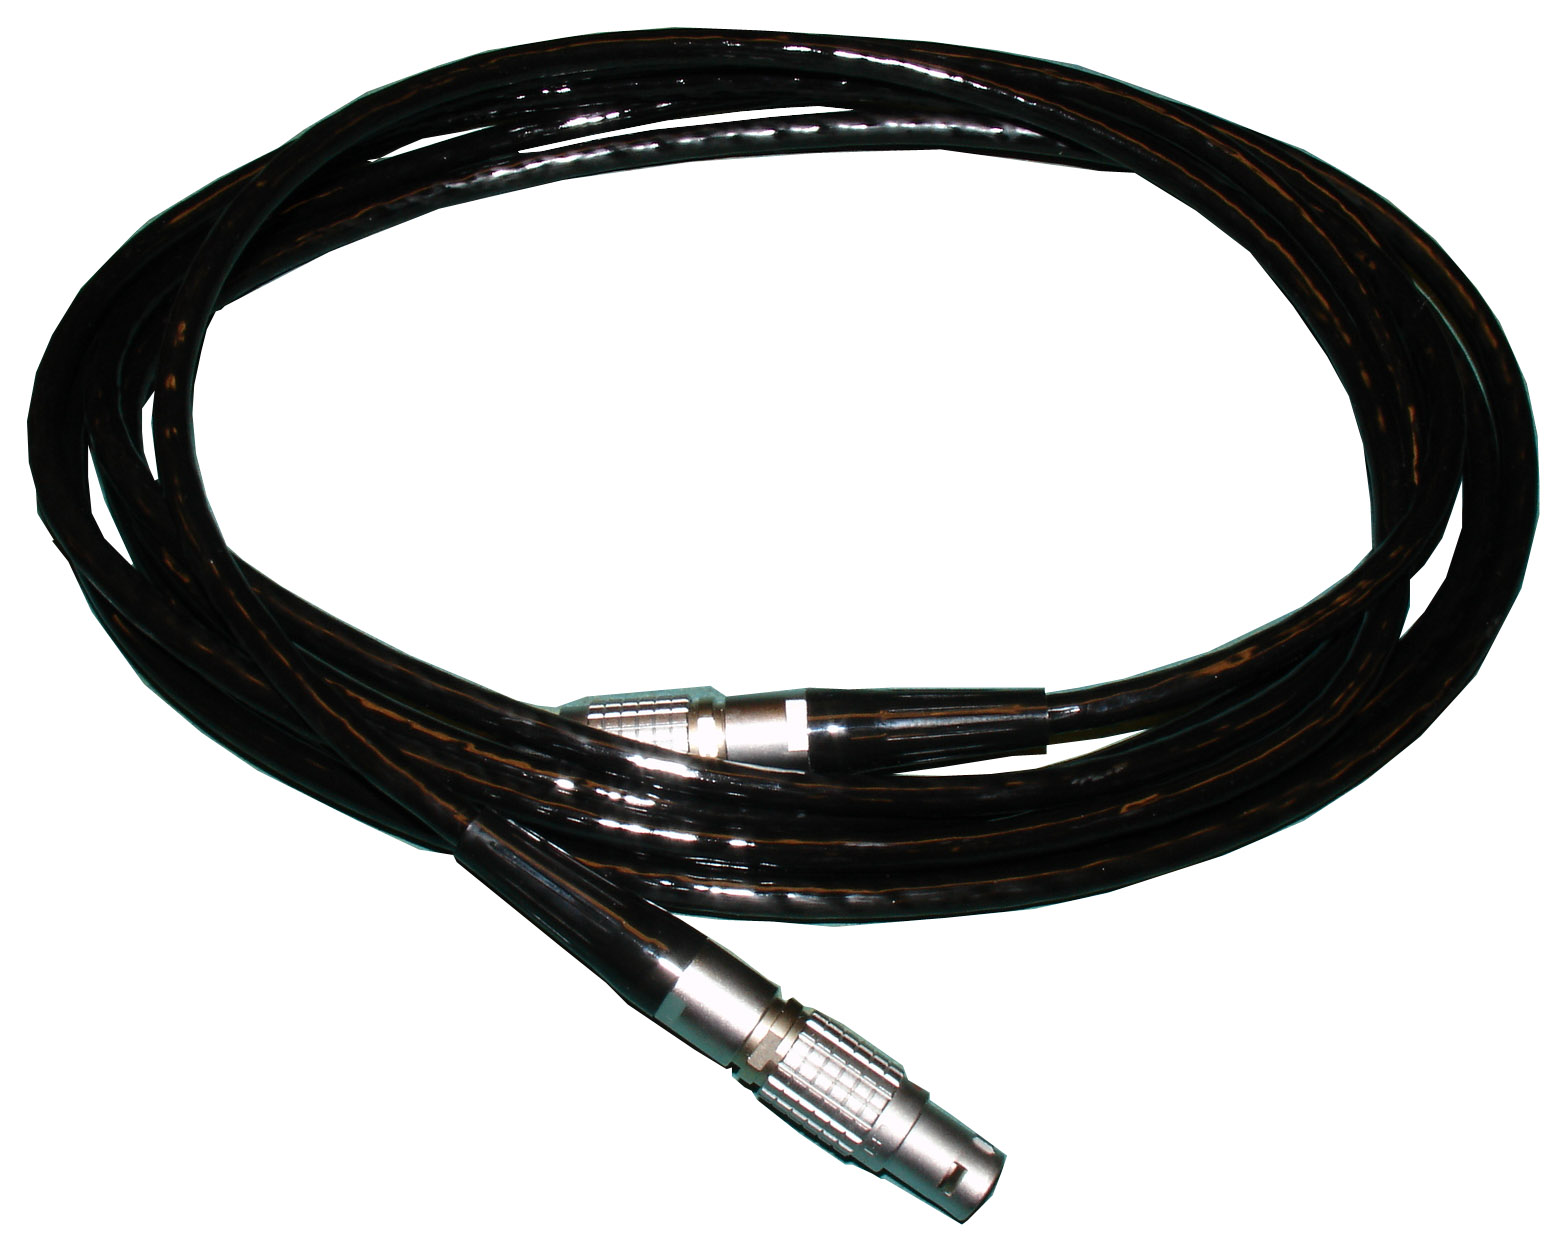 C21 Probe Cable, 3m (for Hand Probe P60, P60 Flex, P50, P50 Flex, H50, H51 and H21)